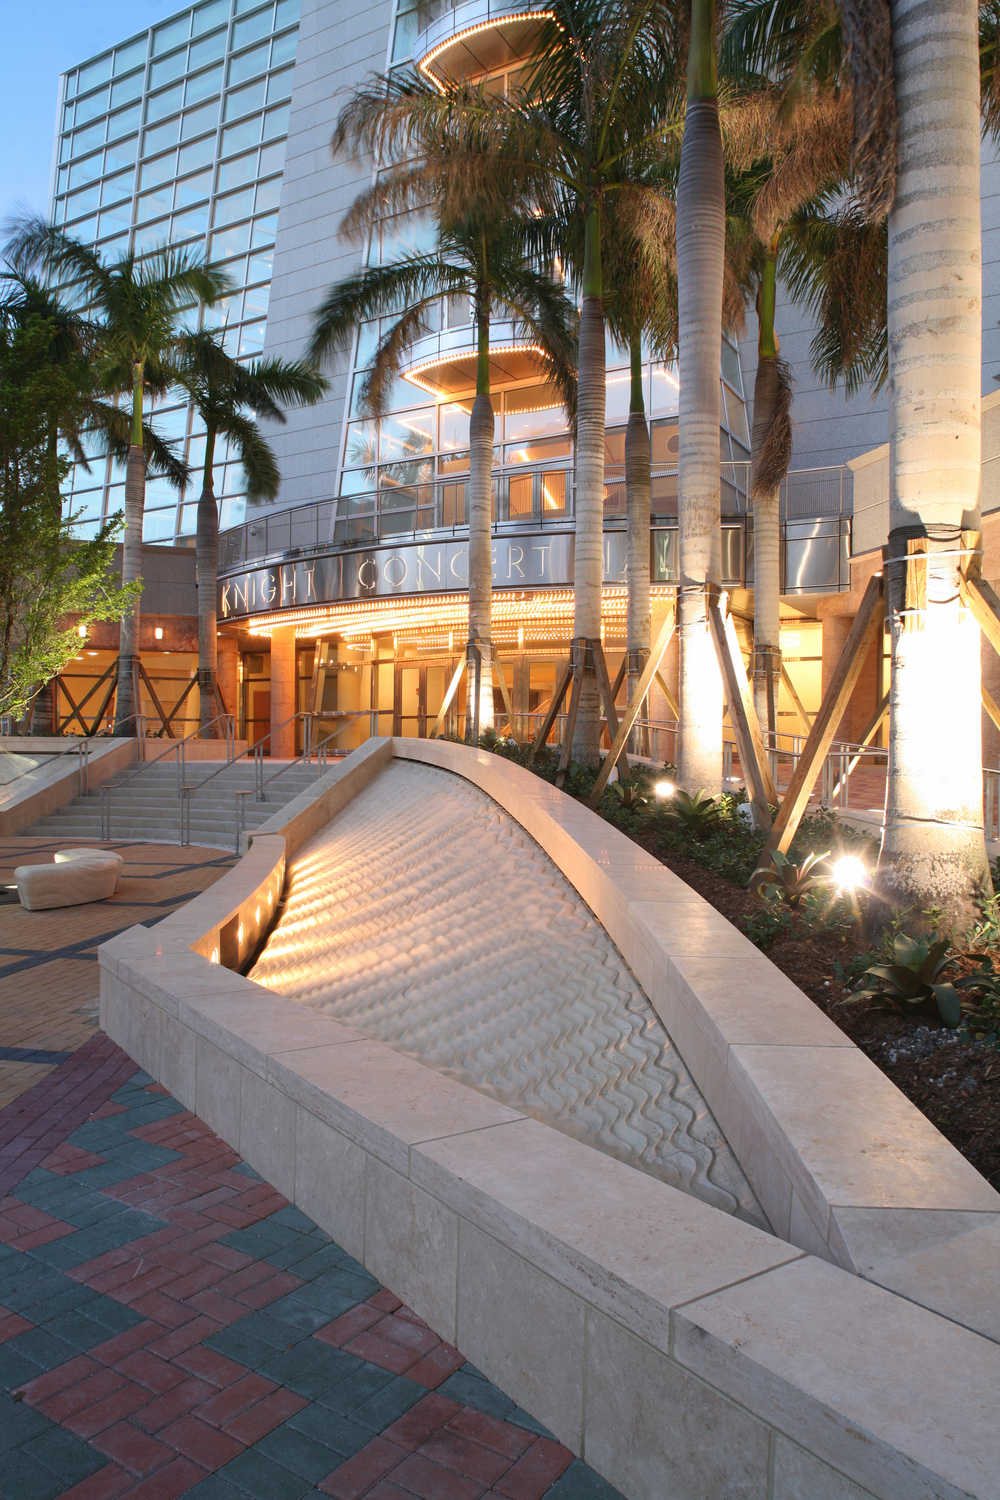 BA_Miami Performing Arts Center_PCPA 2.jpg